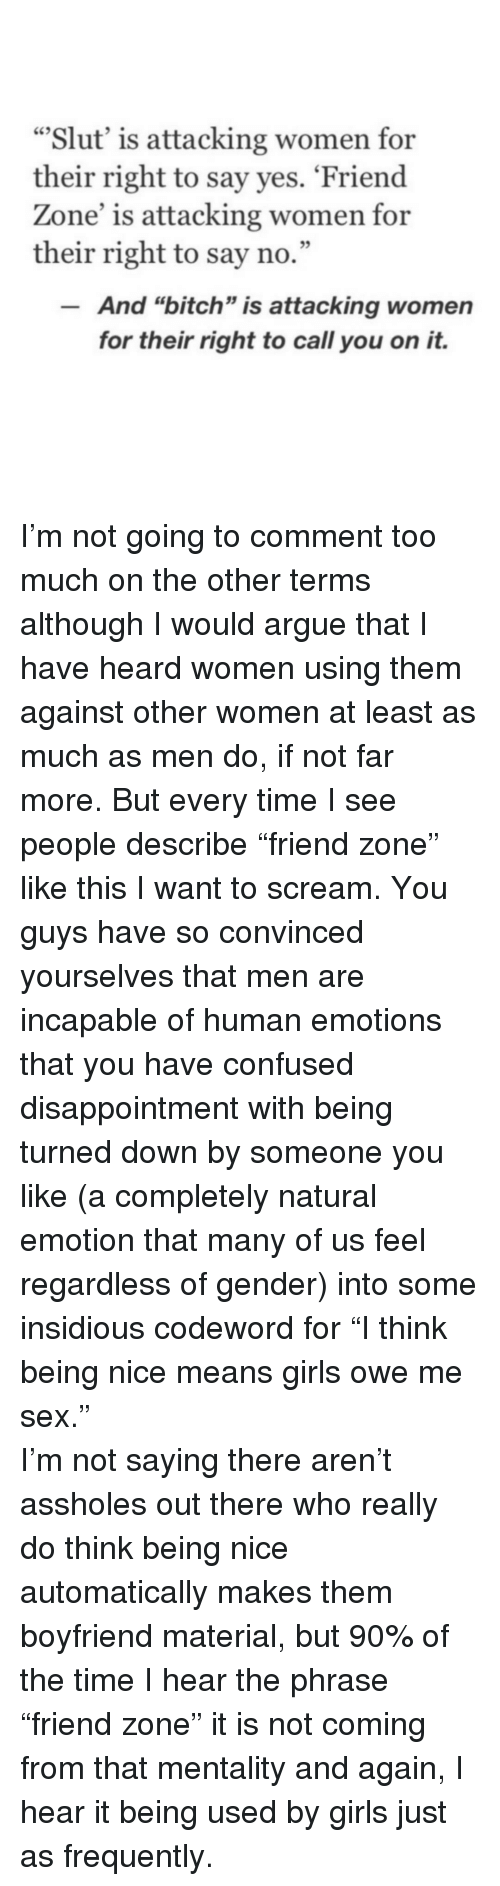 """insidious: """"Slut' is attacking women for  their right to say yes. 'Friend  Zone' is attacking women for  their right to say no.""""  And """"bitch"""" is attacking women  for their right to call you on it. <p>I&rsquo;m not going to comment too much on the other terms although I would argue that I have heard women using them against other women at least as much as men do, if not far more. But every time I see people describe &ldquo;friend zone&rdquo; like this I want to scream. You guys have so convinced yourselves that men are incapable of human emotions that you have confused disappointment with being turned down by someone you like (a completely natural emotion that many of us feel regardless of gender) into some insidious codeword for &ldquo;I think being nice means girls owe me sex.&rdquo; </p>  <p>I&rsquo;m not saying there aren&rsquo;t assholes out there who really do think being nice automatically makes them boyfriend material, but 90% of the time I hear the phrase &ldquo;friend zone&rdquo; it is not coming from that mentality and again, I hear it being used by girls just as frequently.</p>"""